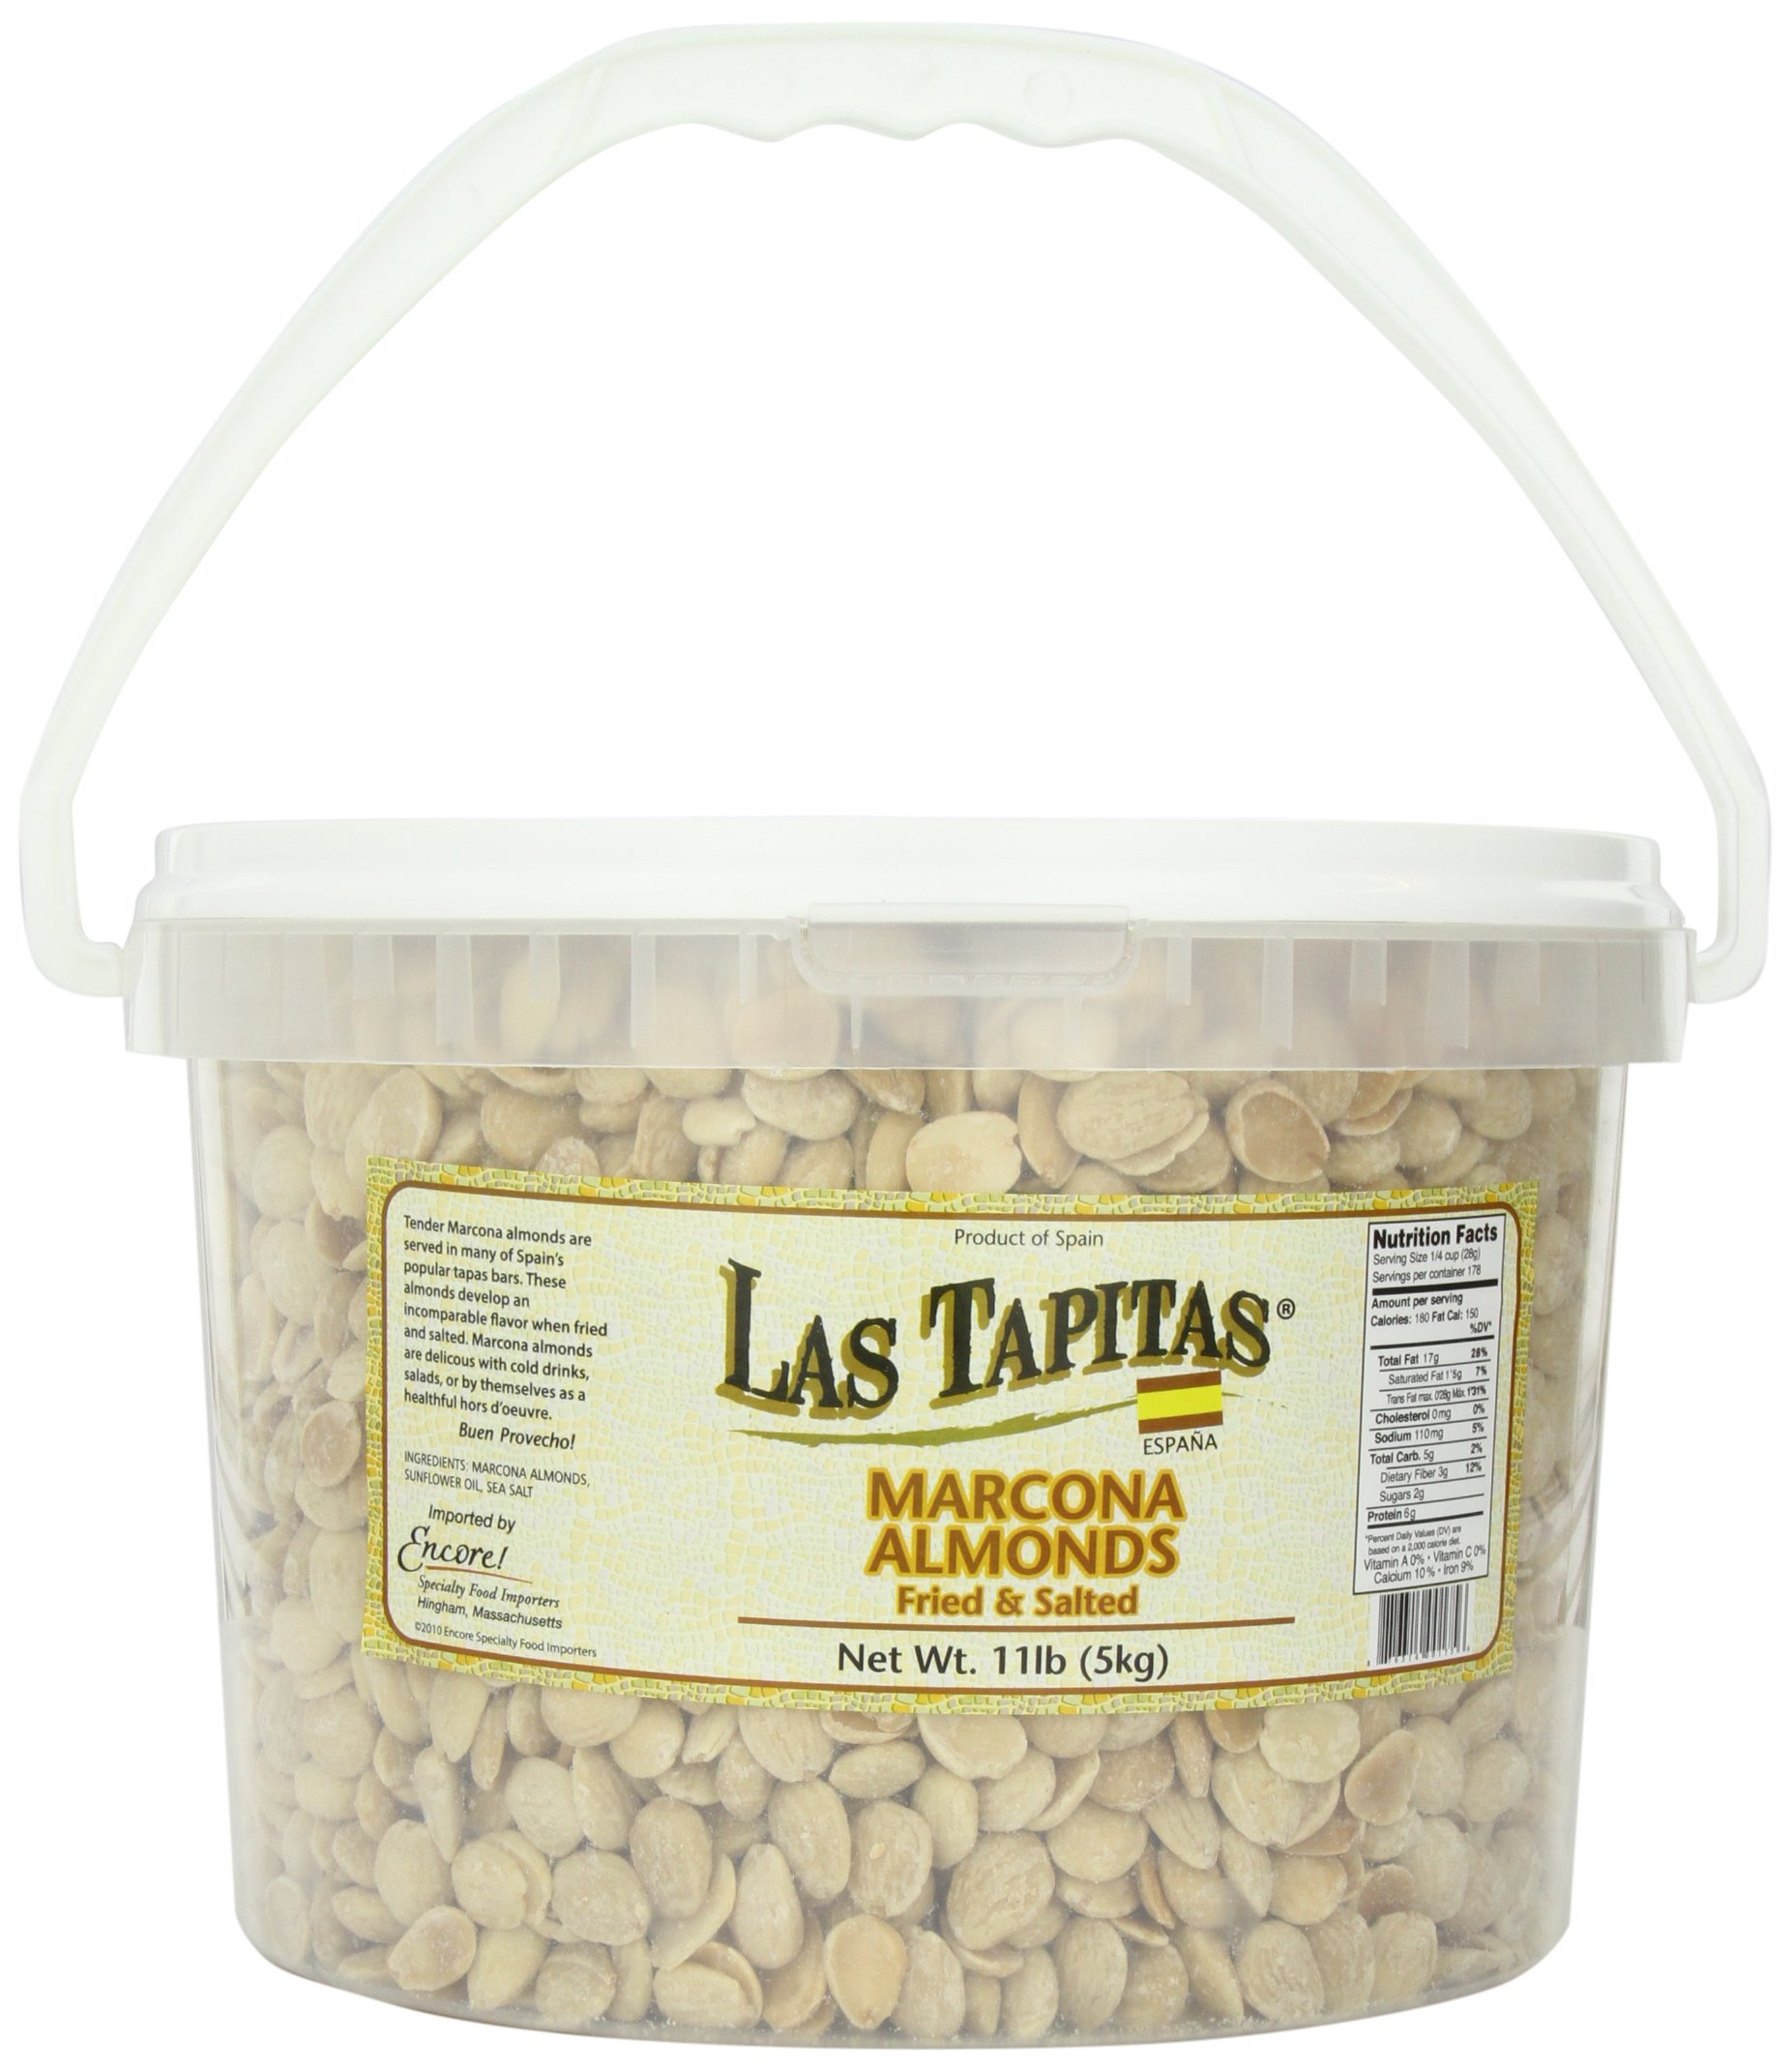 Las Tapitas Marcona Almonds, 11-Pound